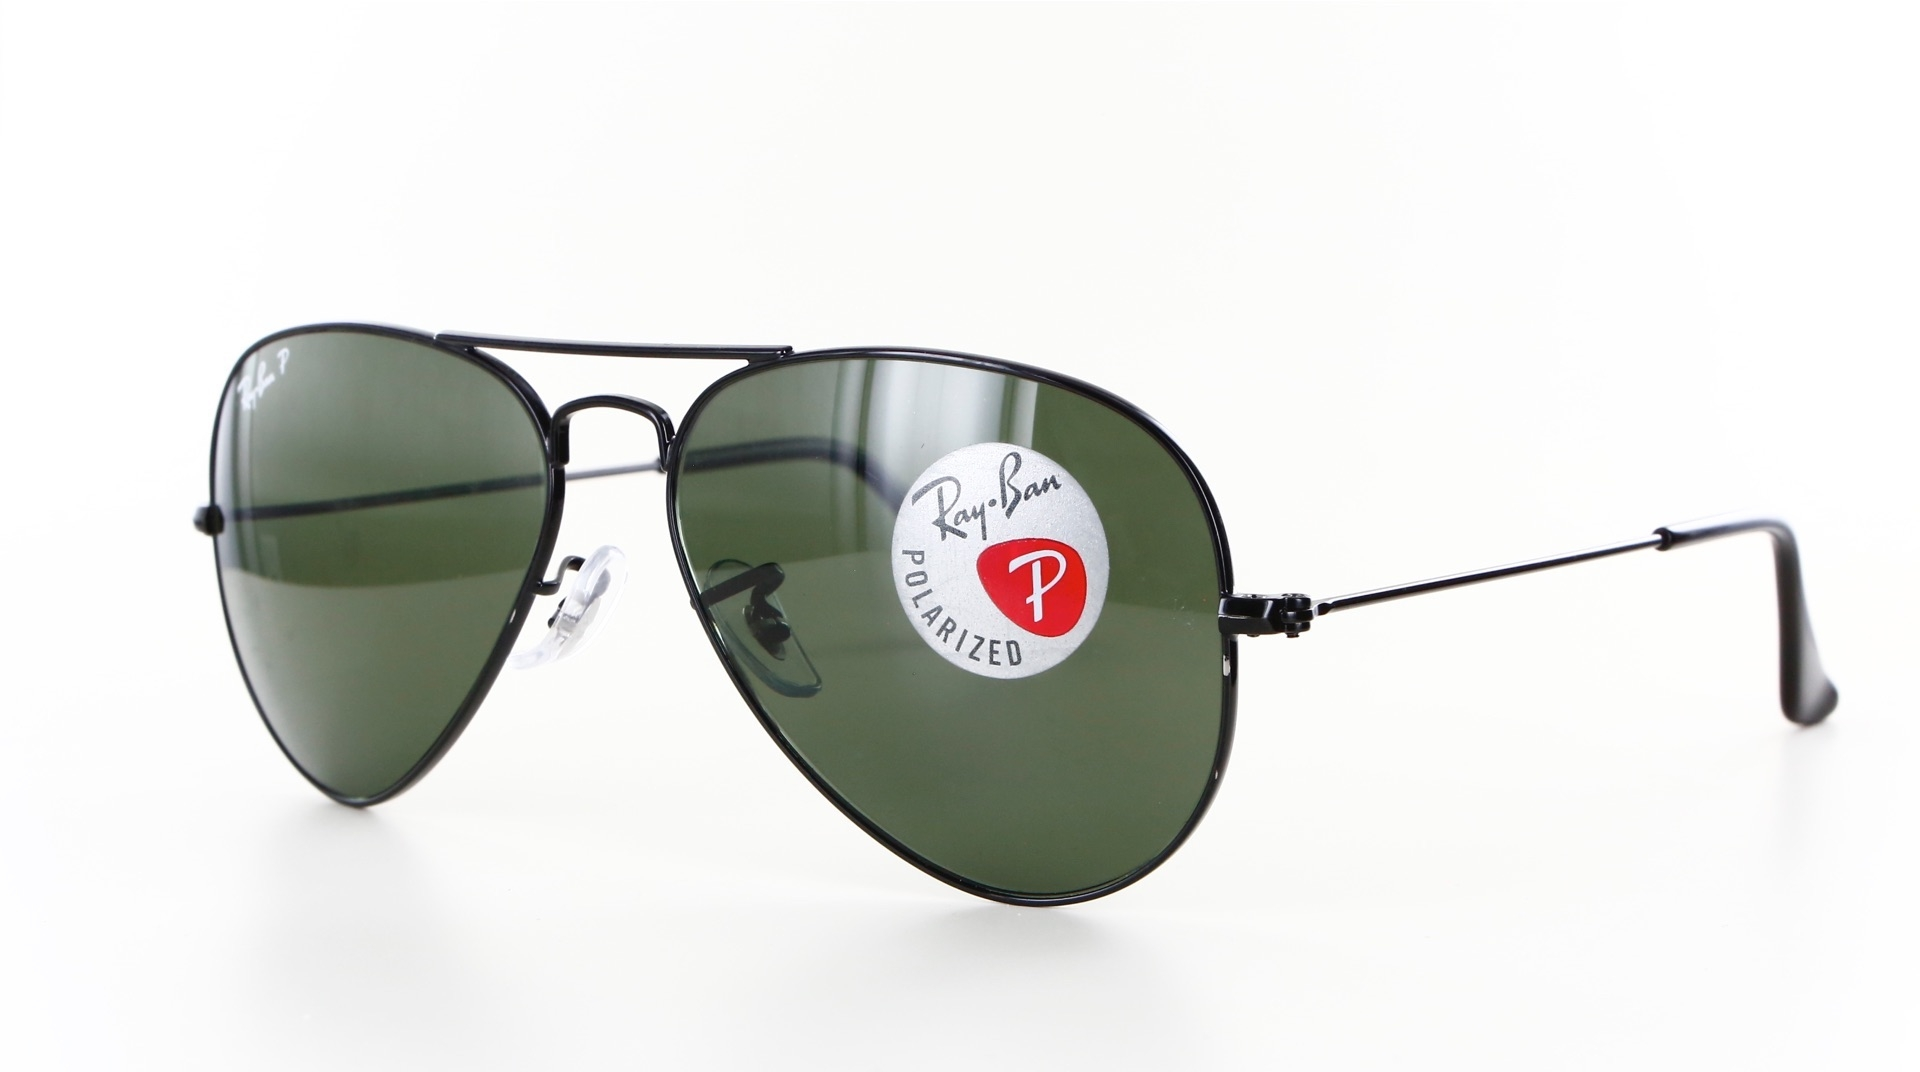 Ray-Ban - ref: 72344